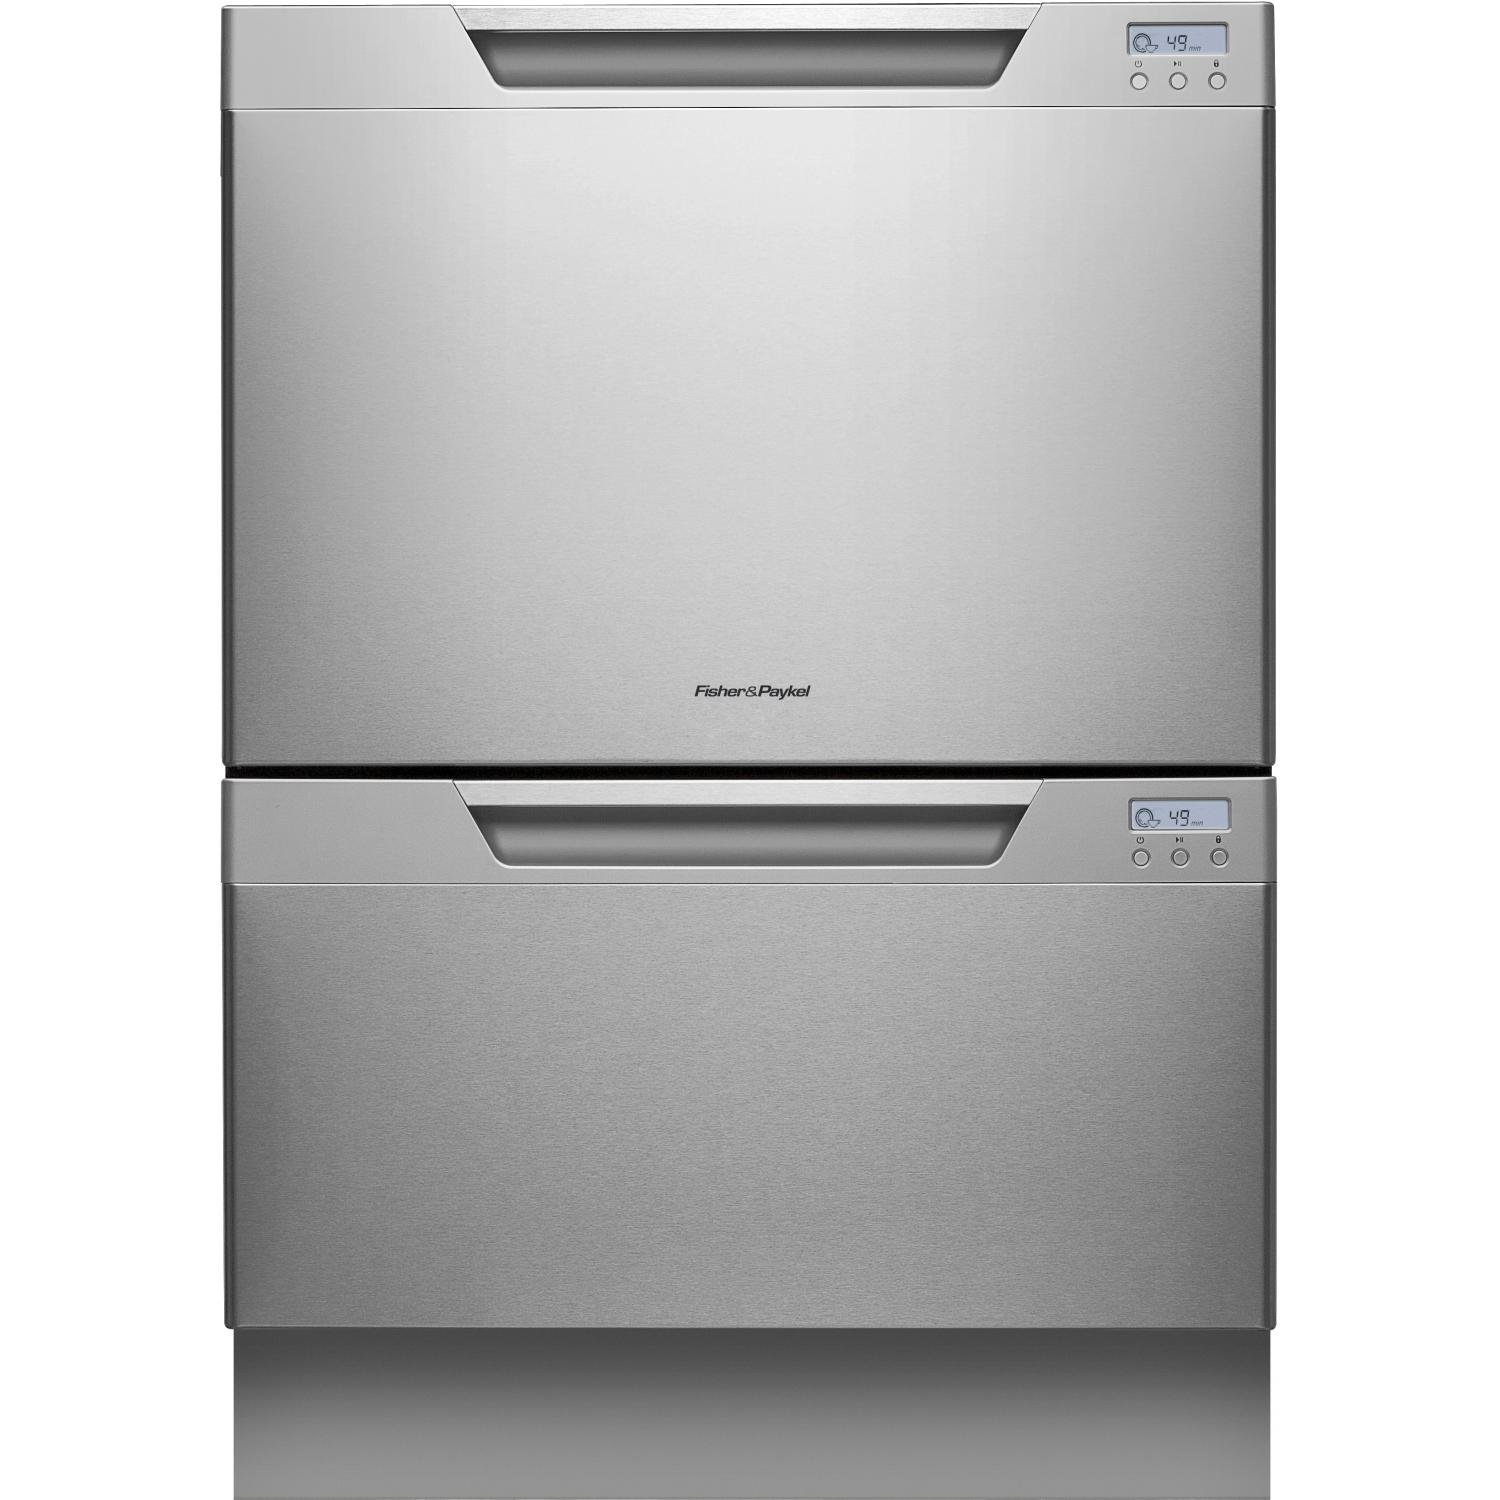 """kitchen aid dishwashers hotels with kitchens in portland oregon review of the fisher paykel dd24dctx7 dish drawer 24"""""""